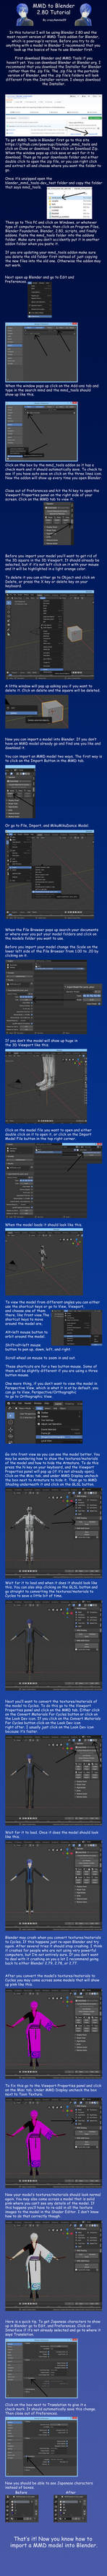 MMD to Blender 2.80 Tutorial